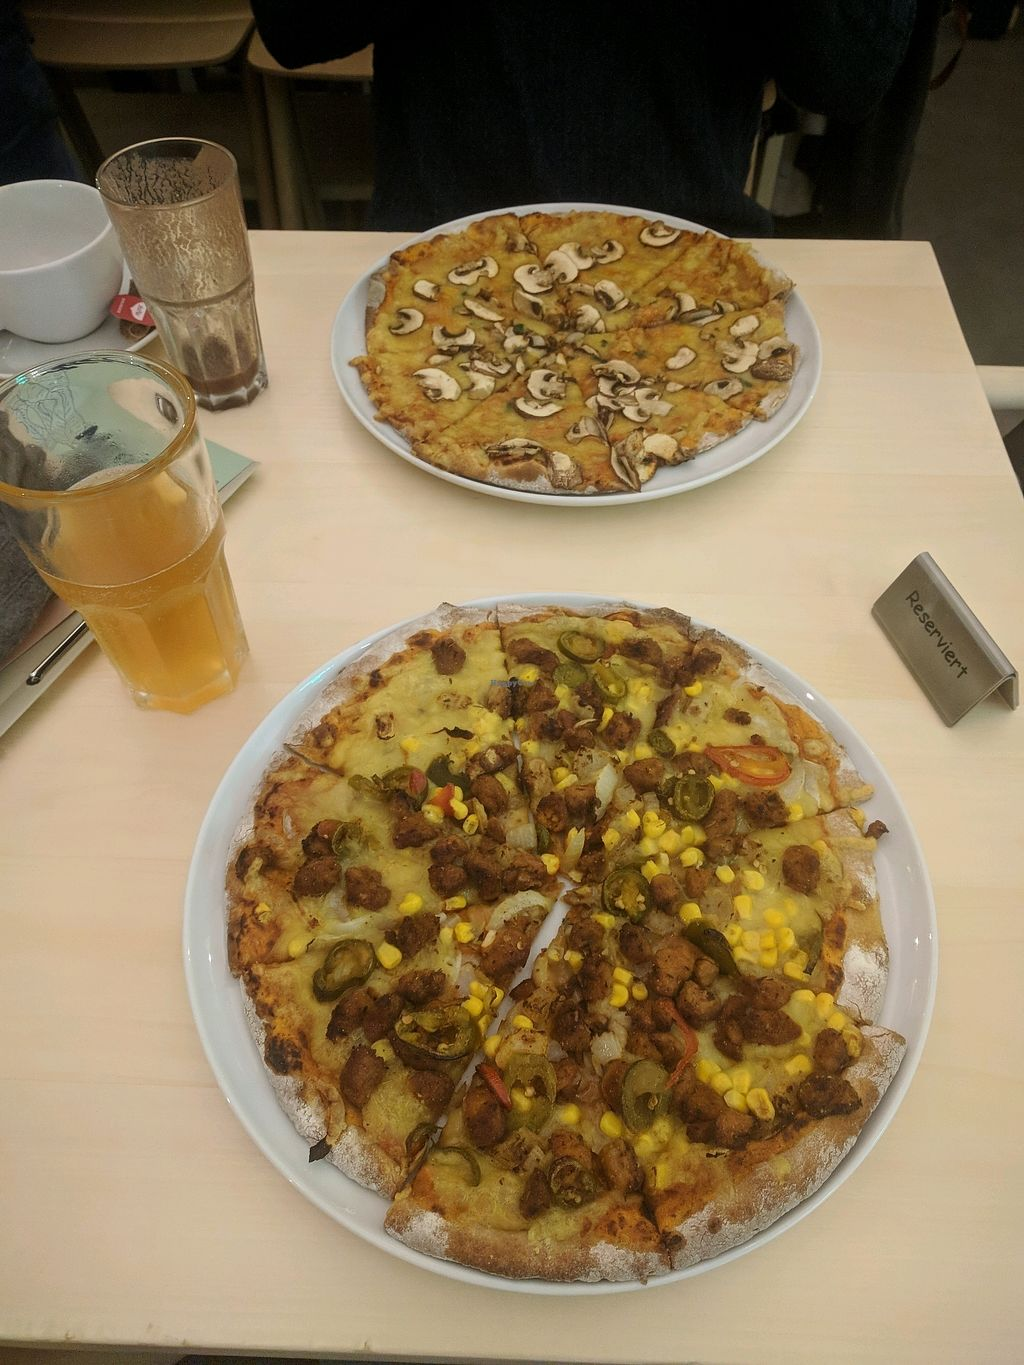 "Photo of Veganel  by <a href=""/members/profile/Navaie"">Navaie</a> <br/>Pizza Mexicana & Pizza Funghi <br/> November 11, 2017  - <a href='/contact/abuse/image/85242/324254'>Report</a>"